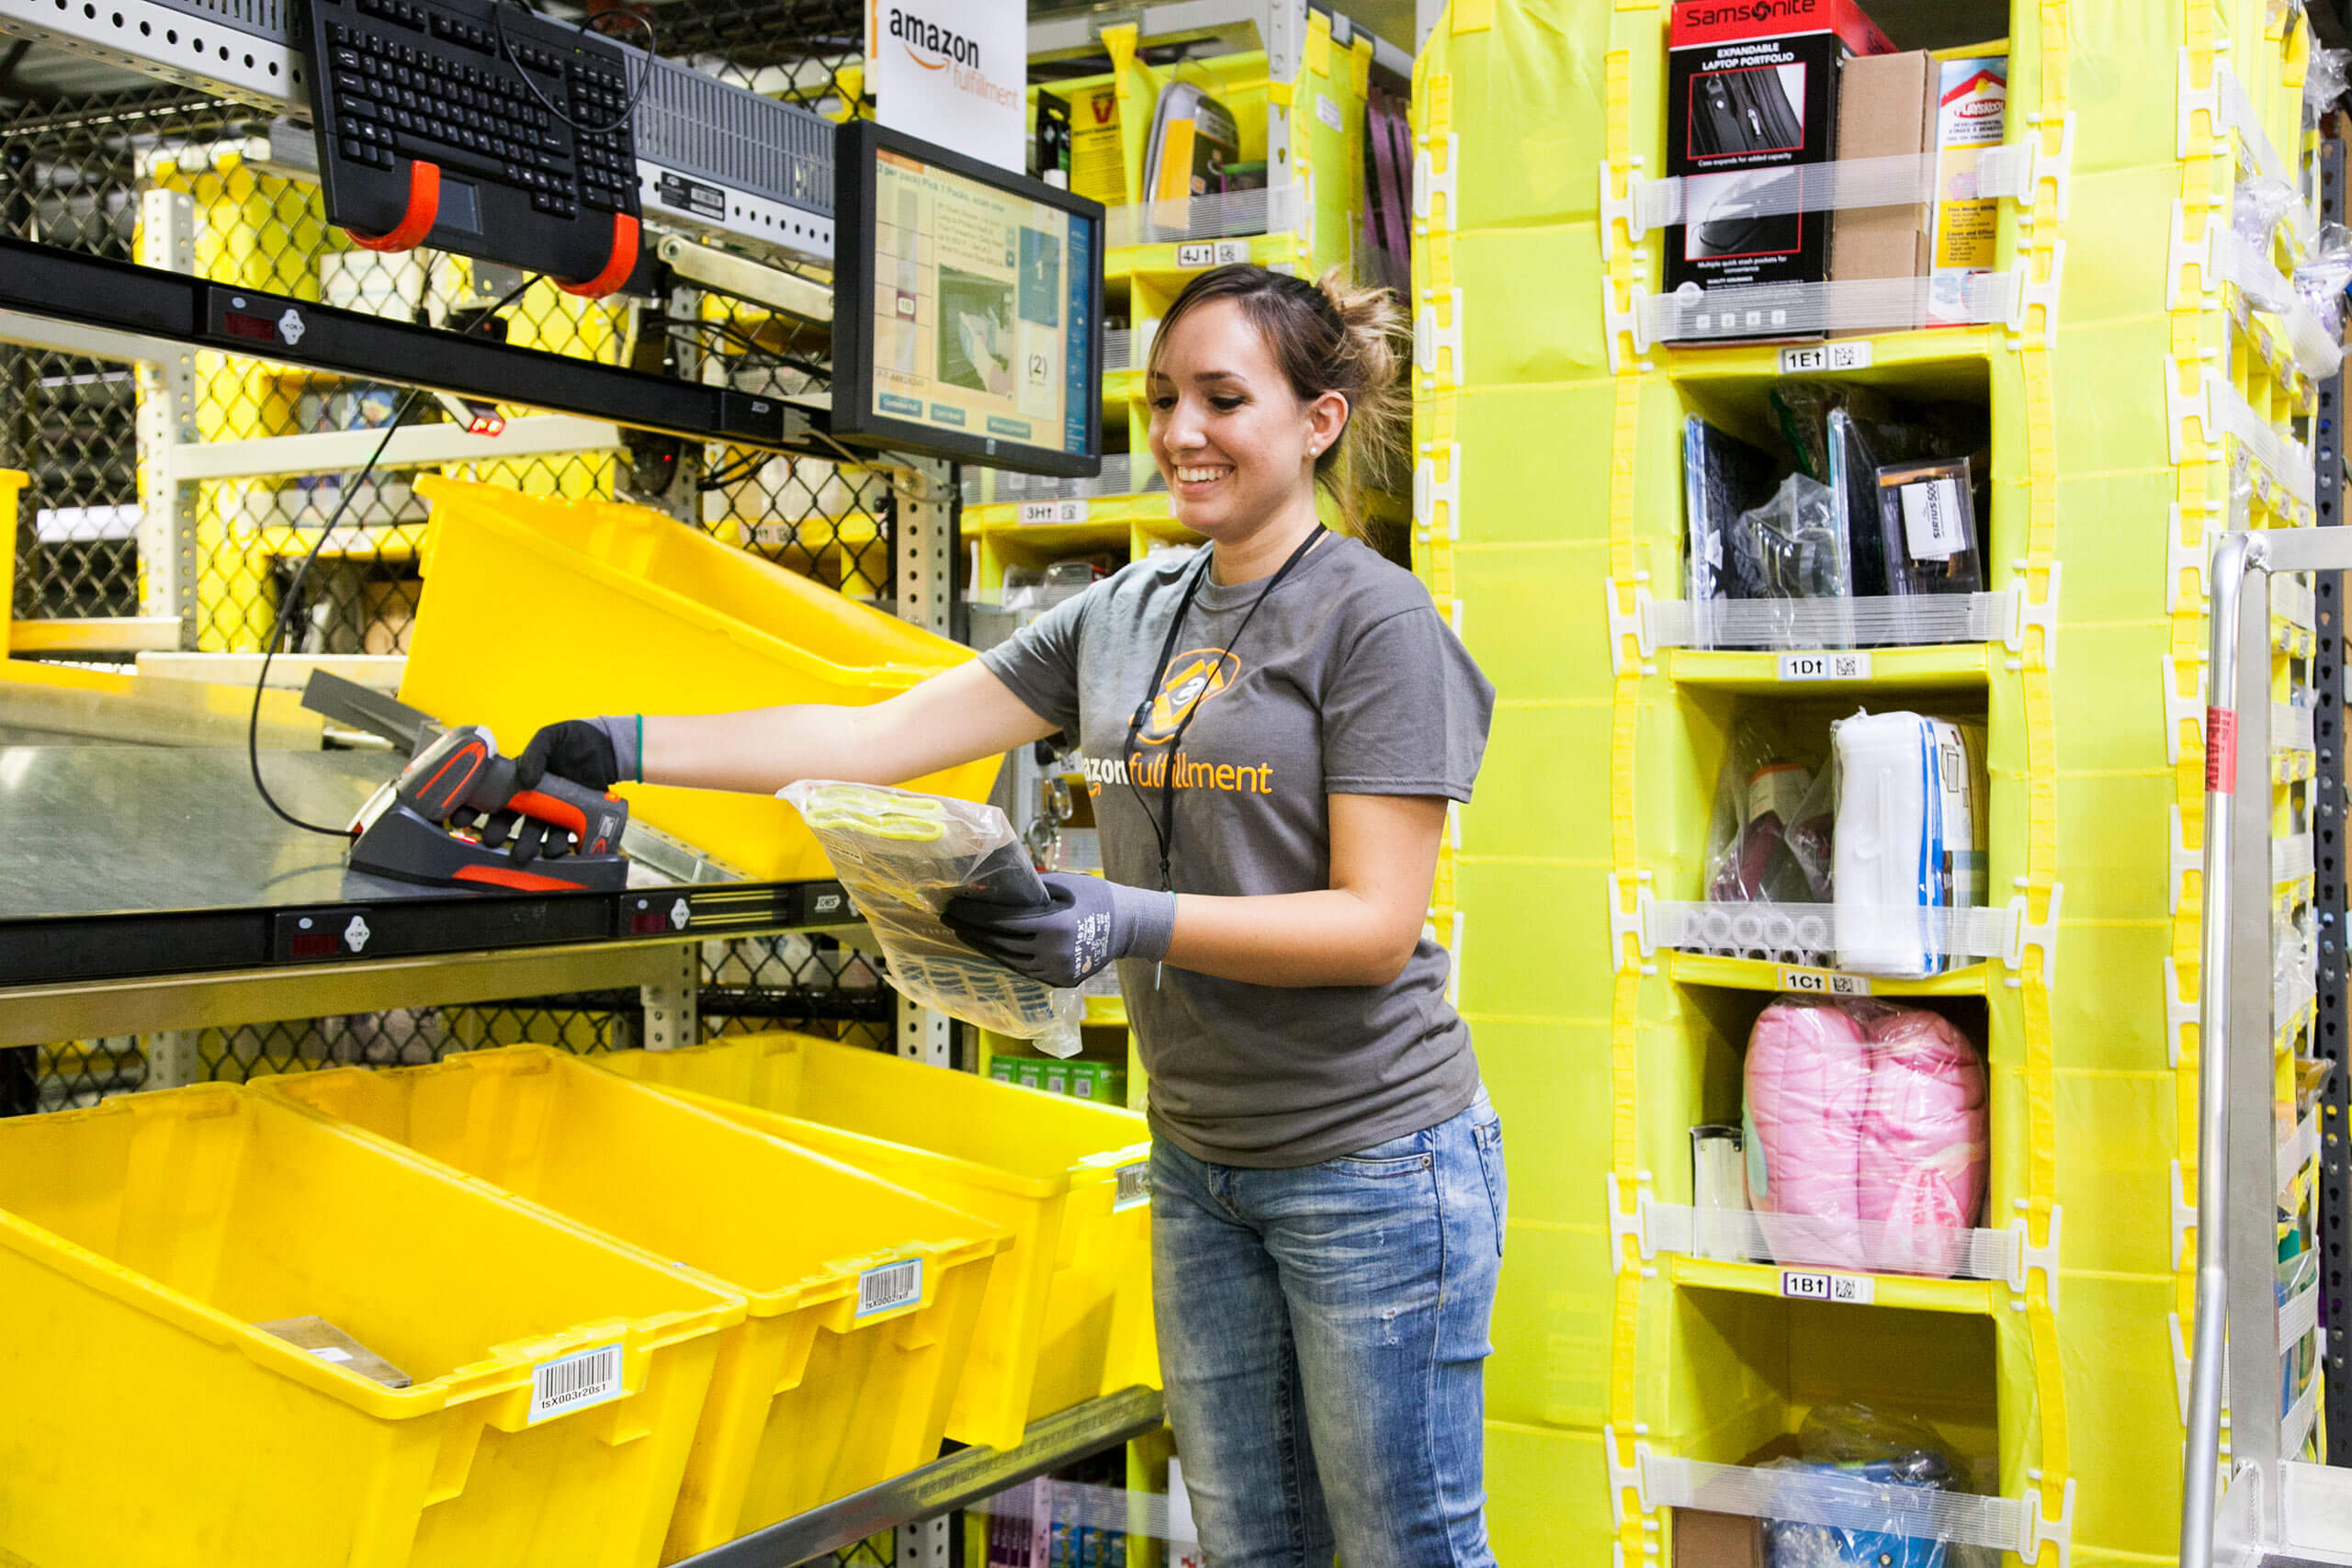 Amazon's minimum wage hike attracted a record number of job applications